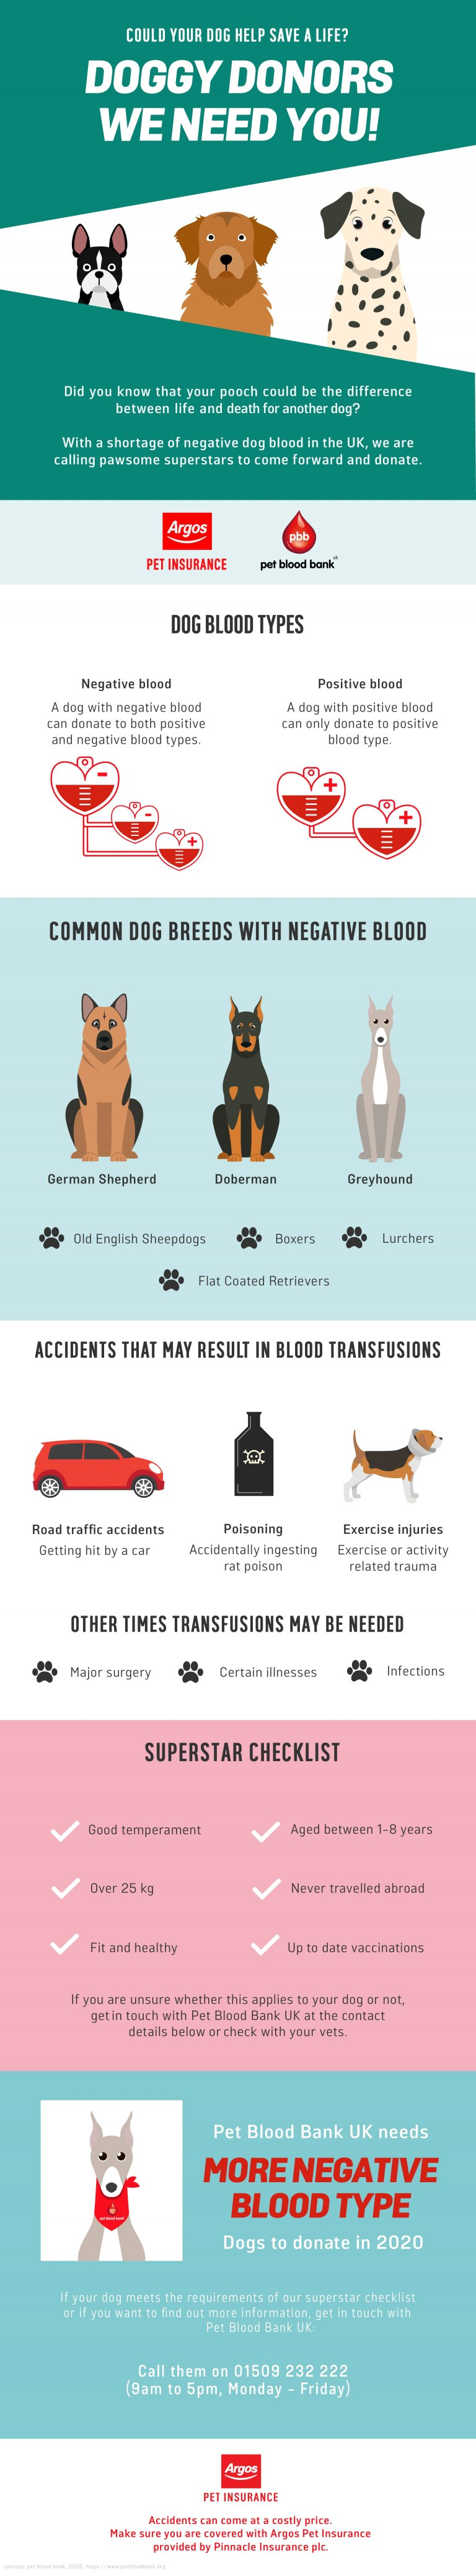 dog blood donation information, infographic and requirements